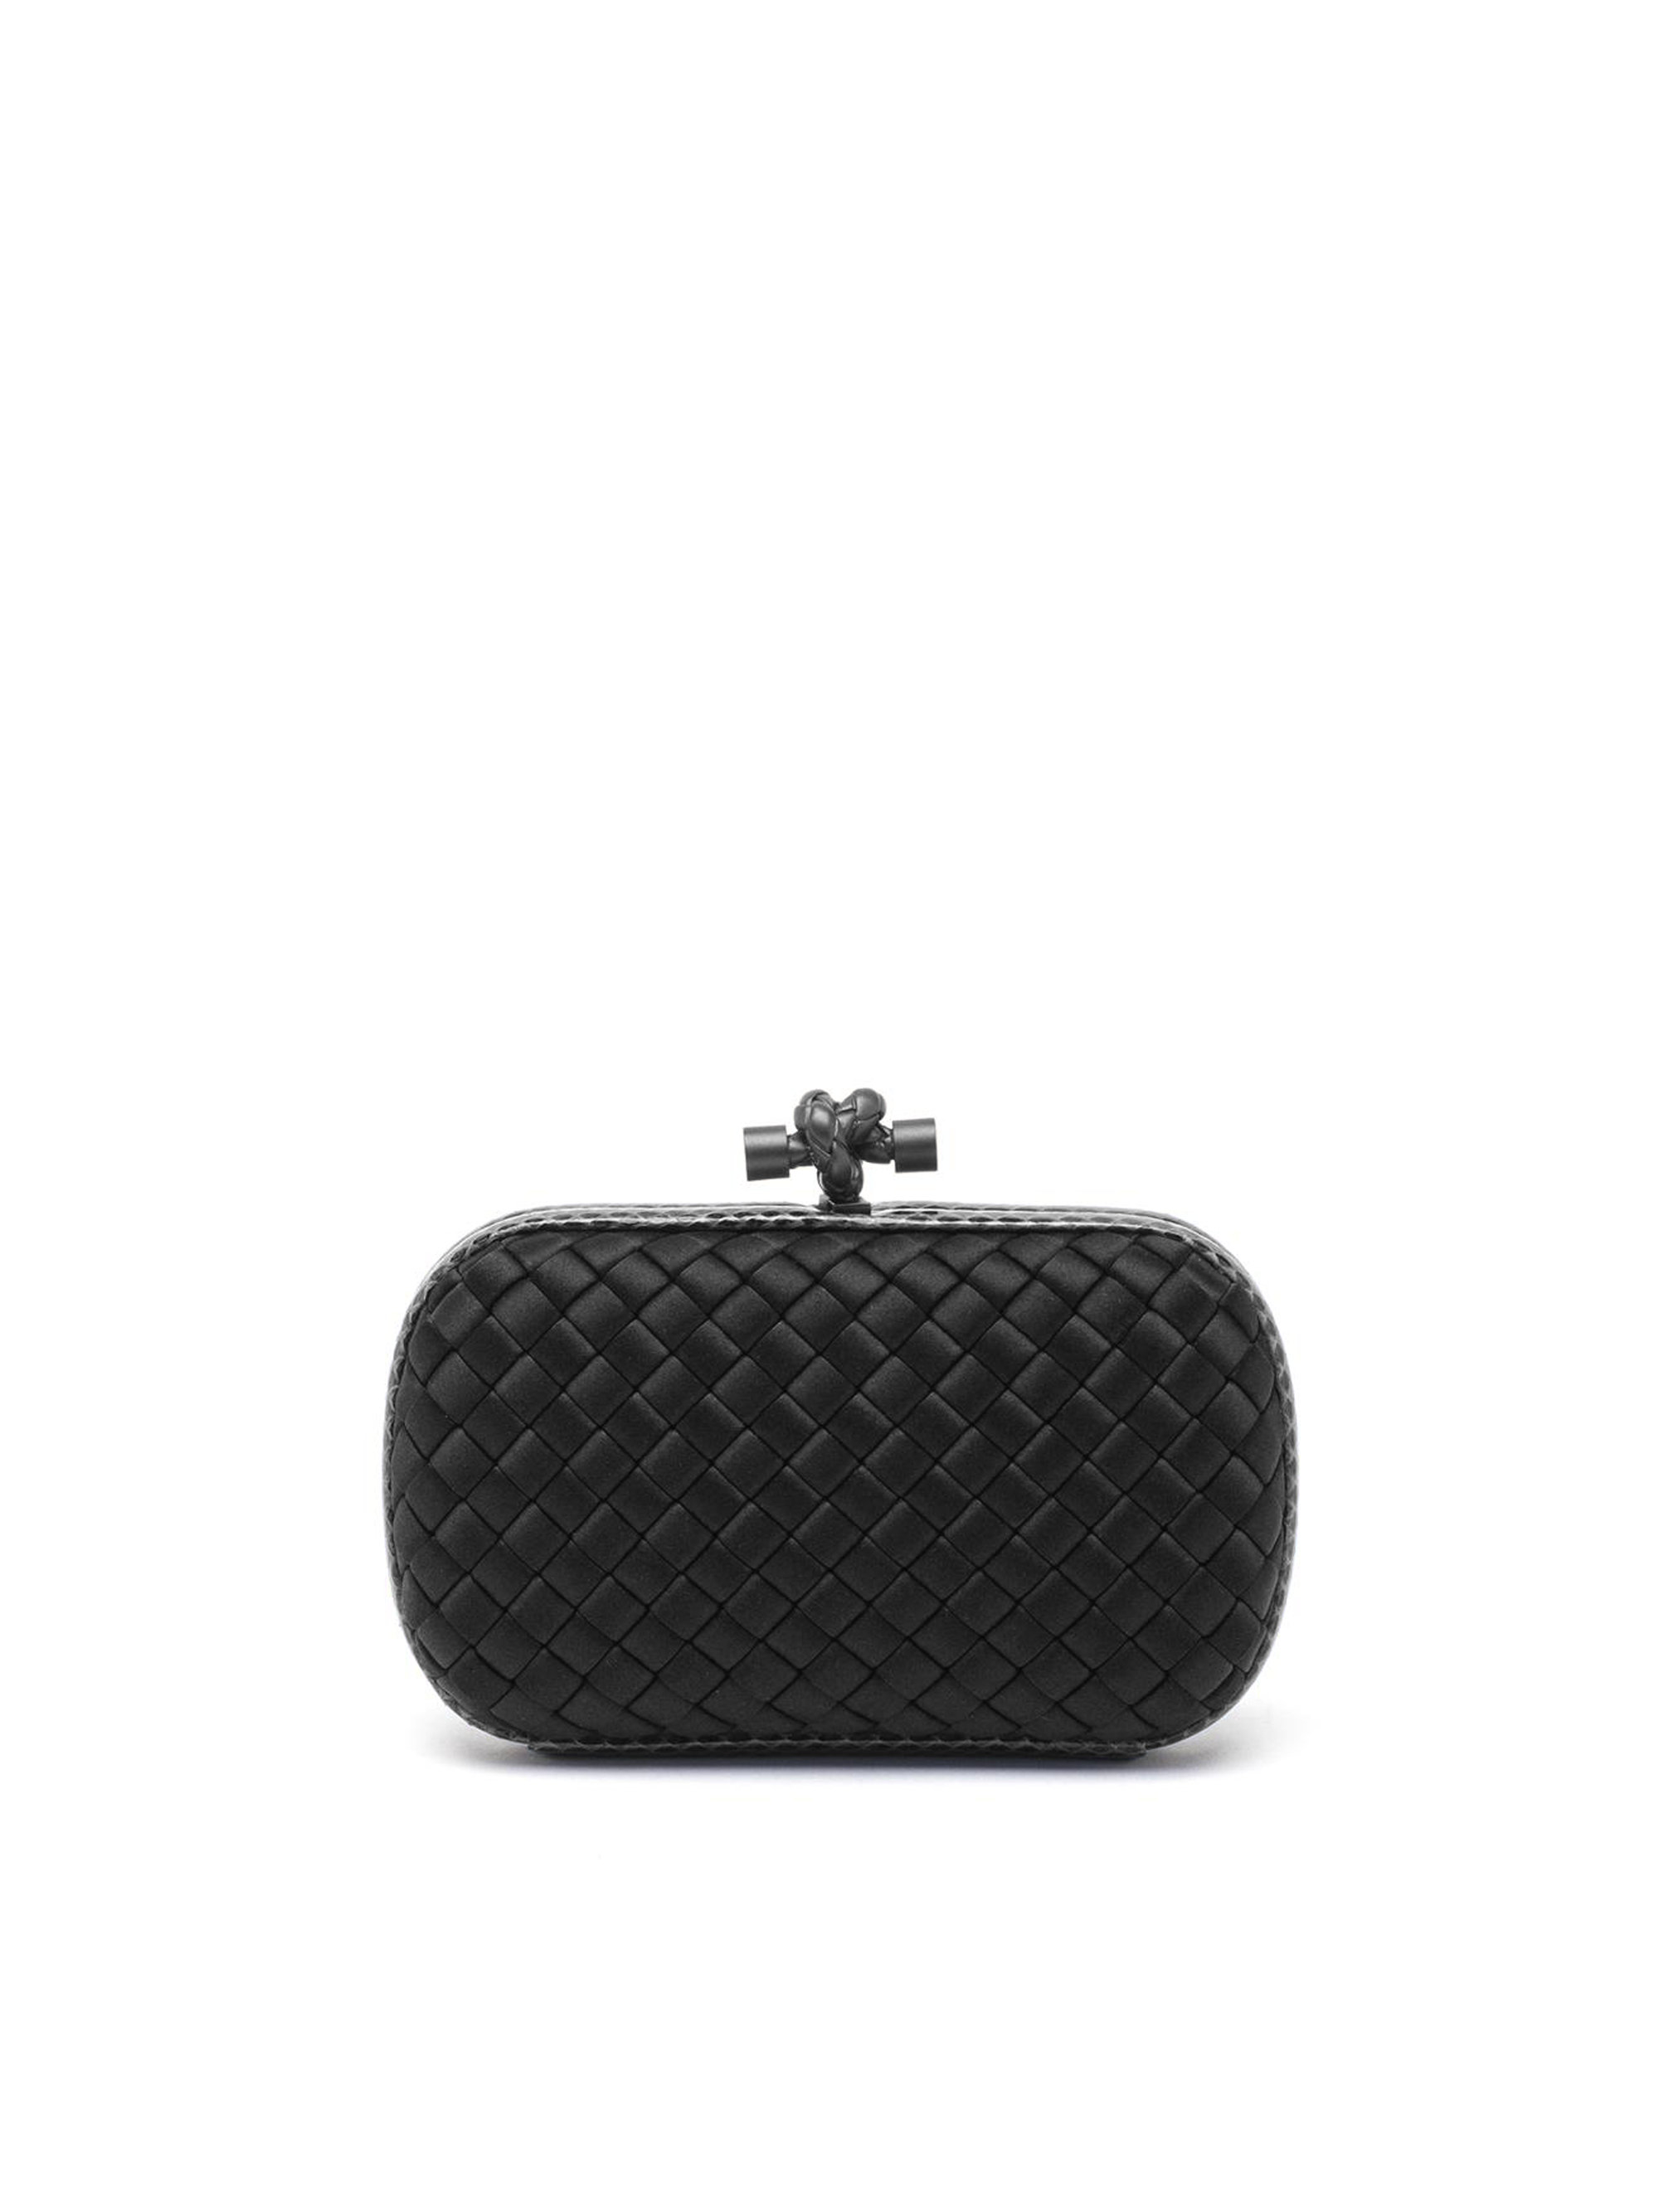 fd11cd9a92ed Bottega veneta Woven Mini Knot Clutch in Black